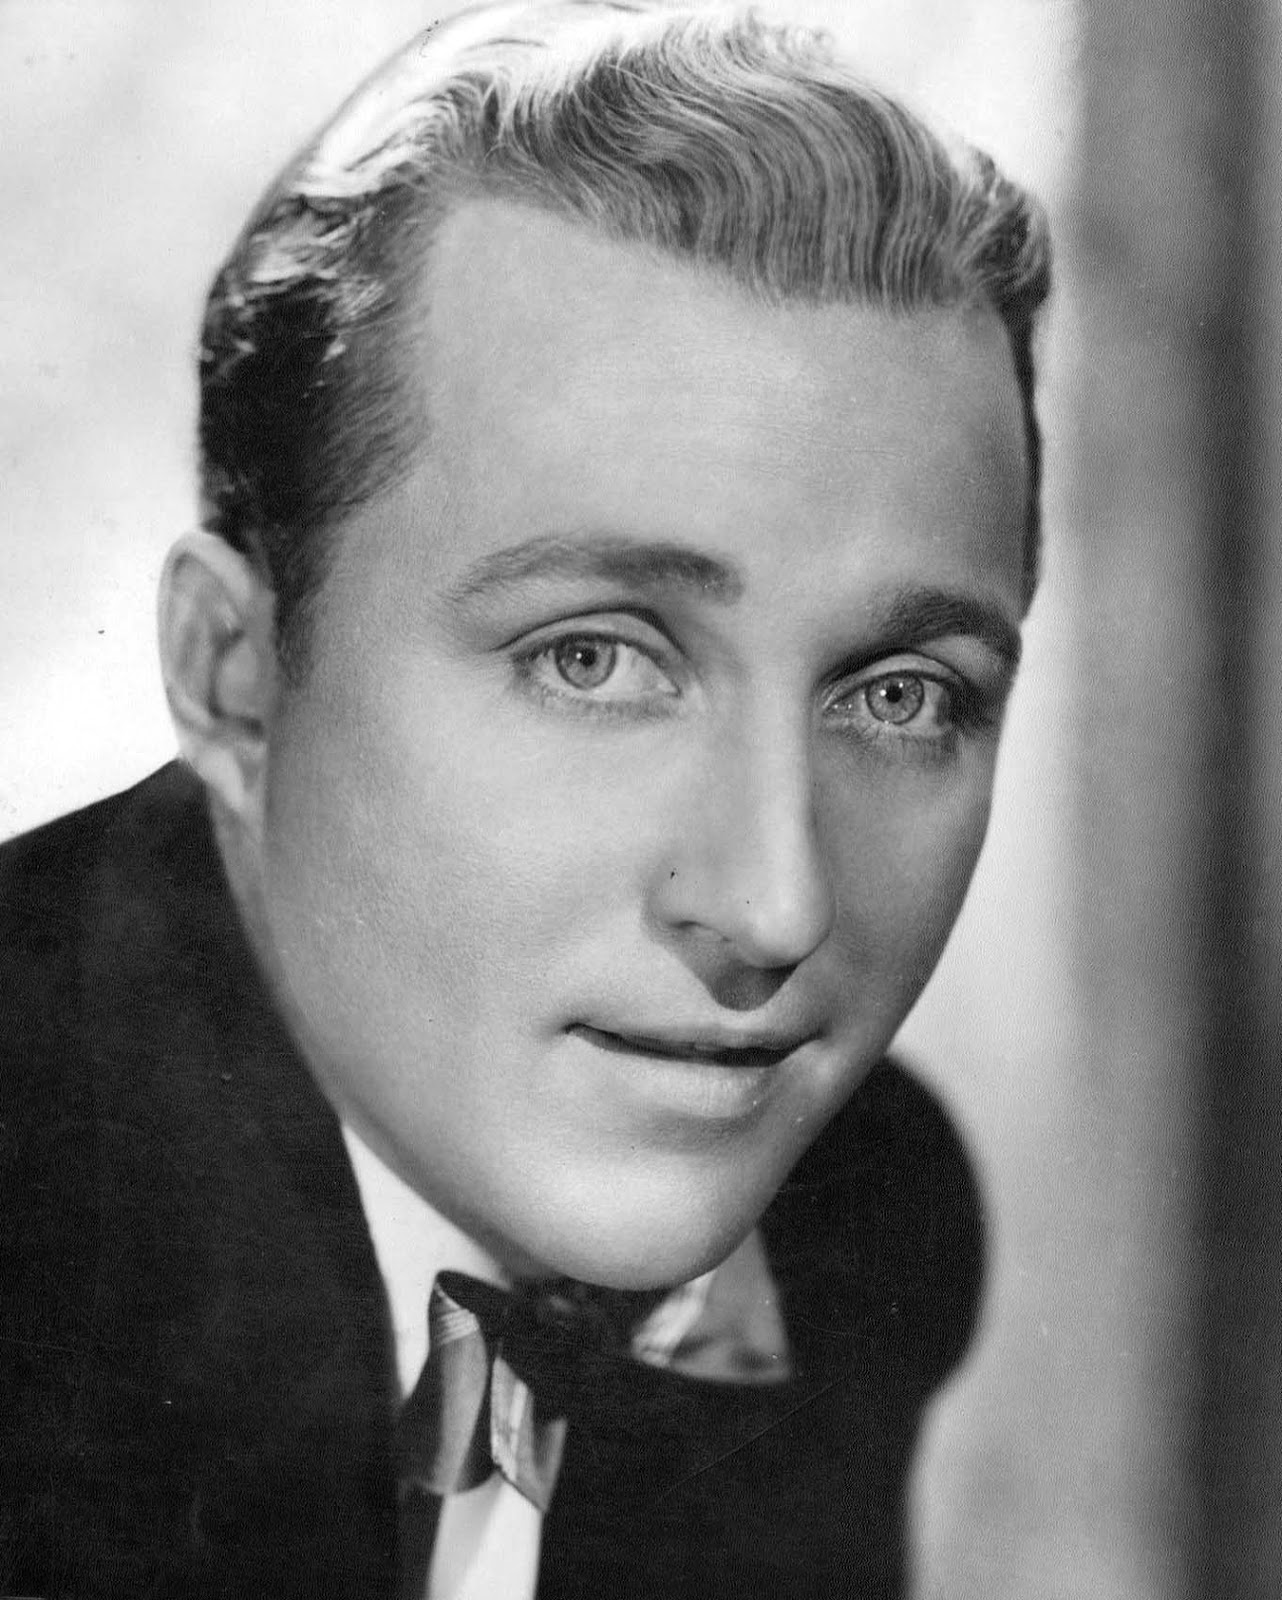 Bing Finance: Martin Grams: Bing Crosby And The Business Of Transcriptions